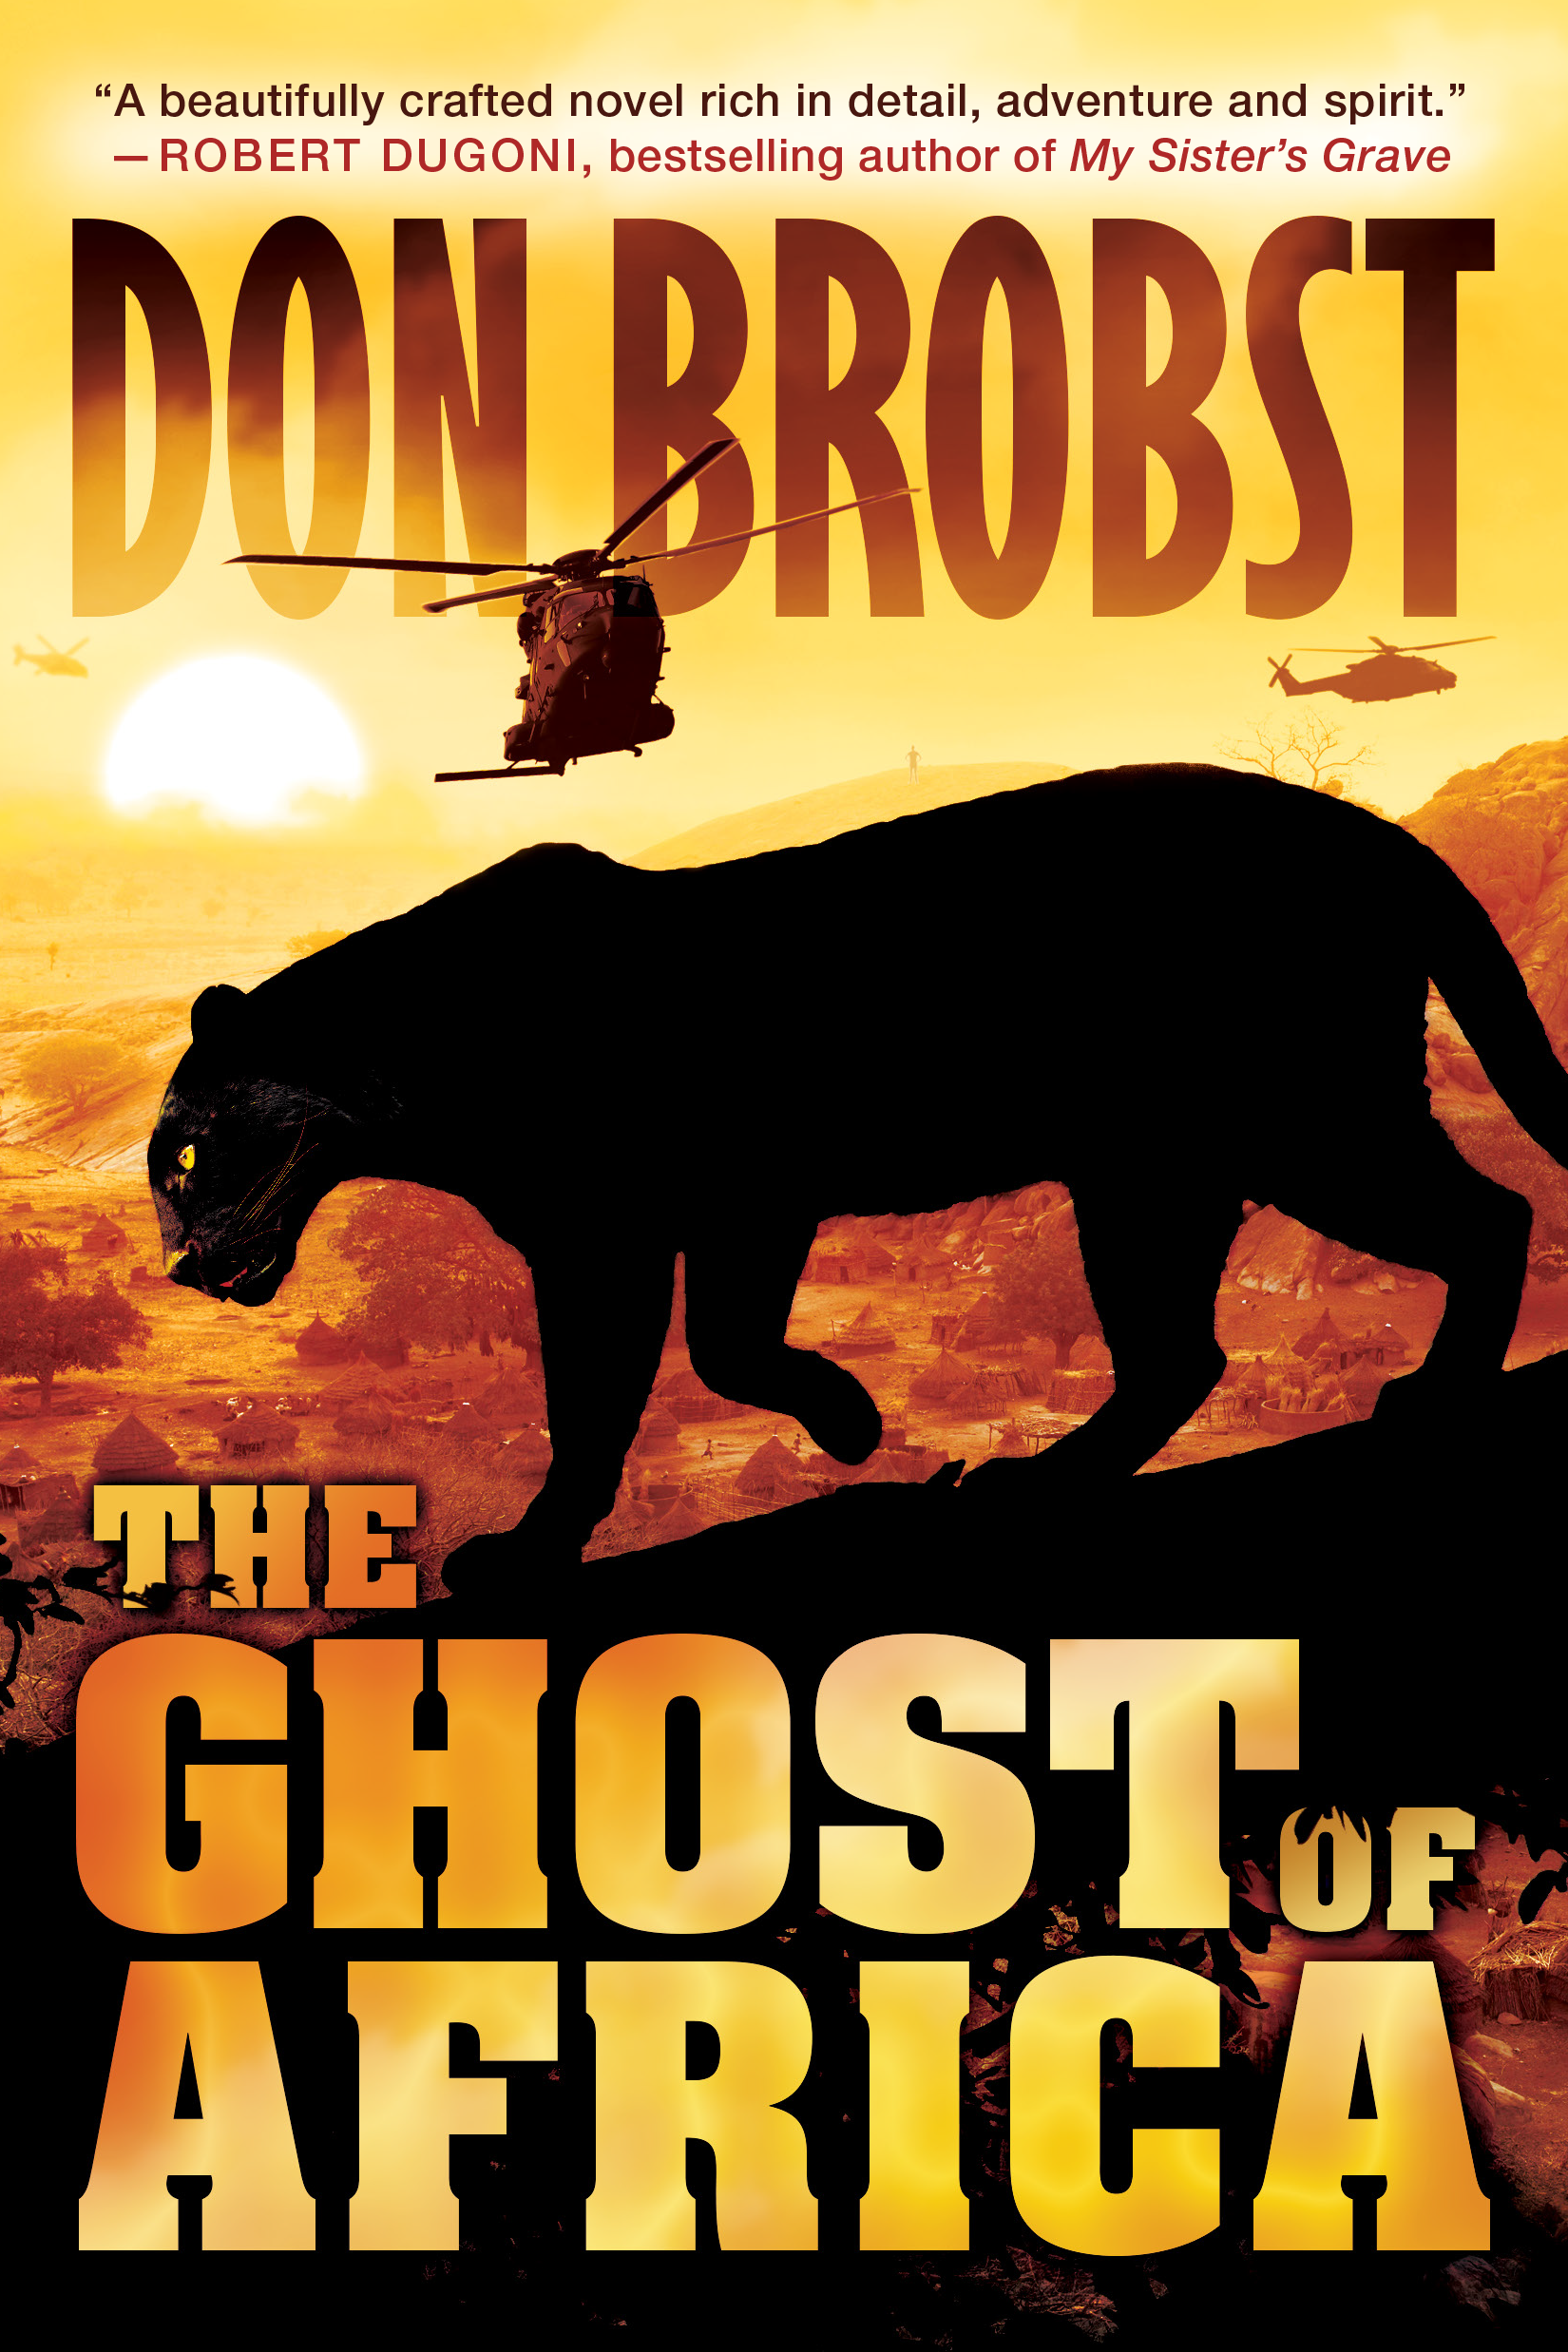 Don Brobst - The Ghost of Africa